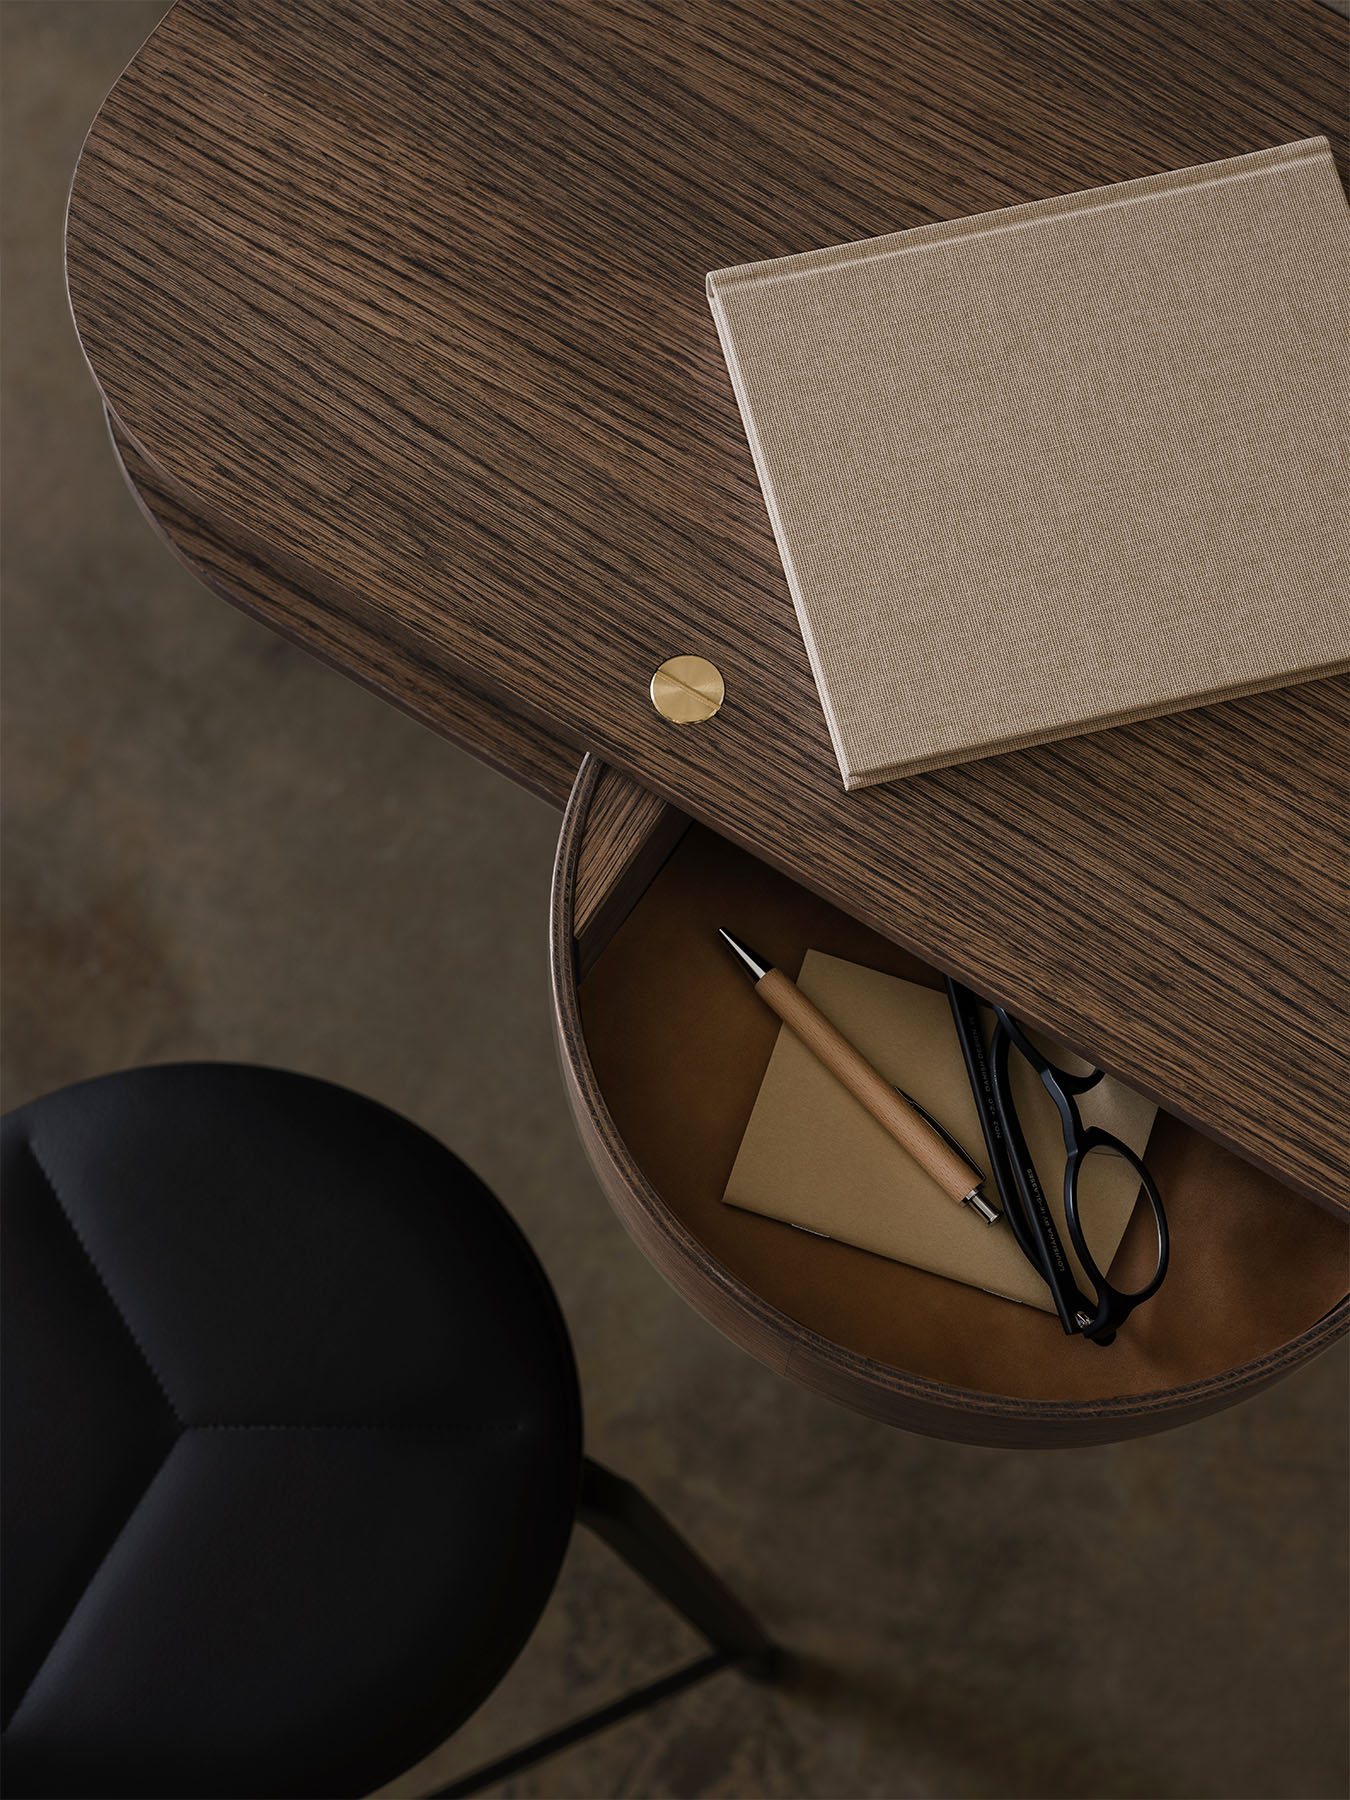 Valet_wall-console_smoked-oak_top_view_Northern_Photo_Einar_Aslaksen_Low-res